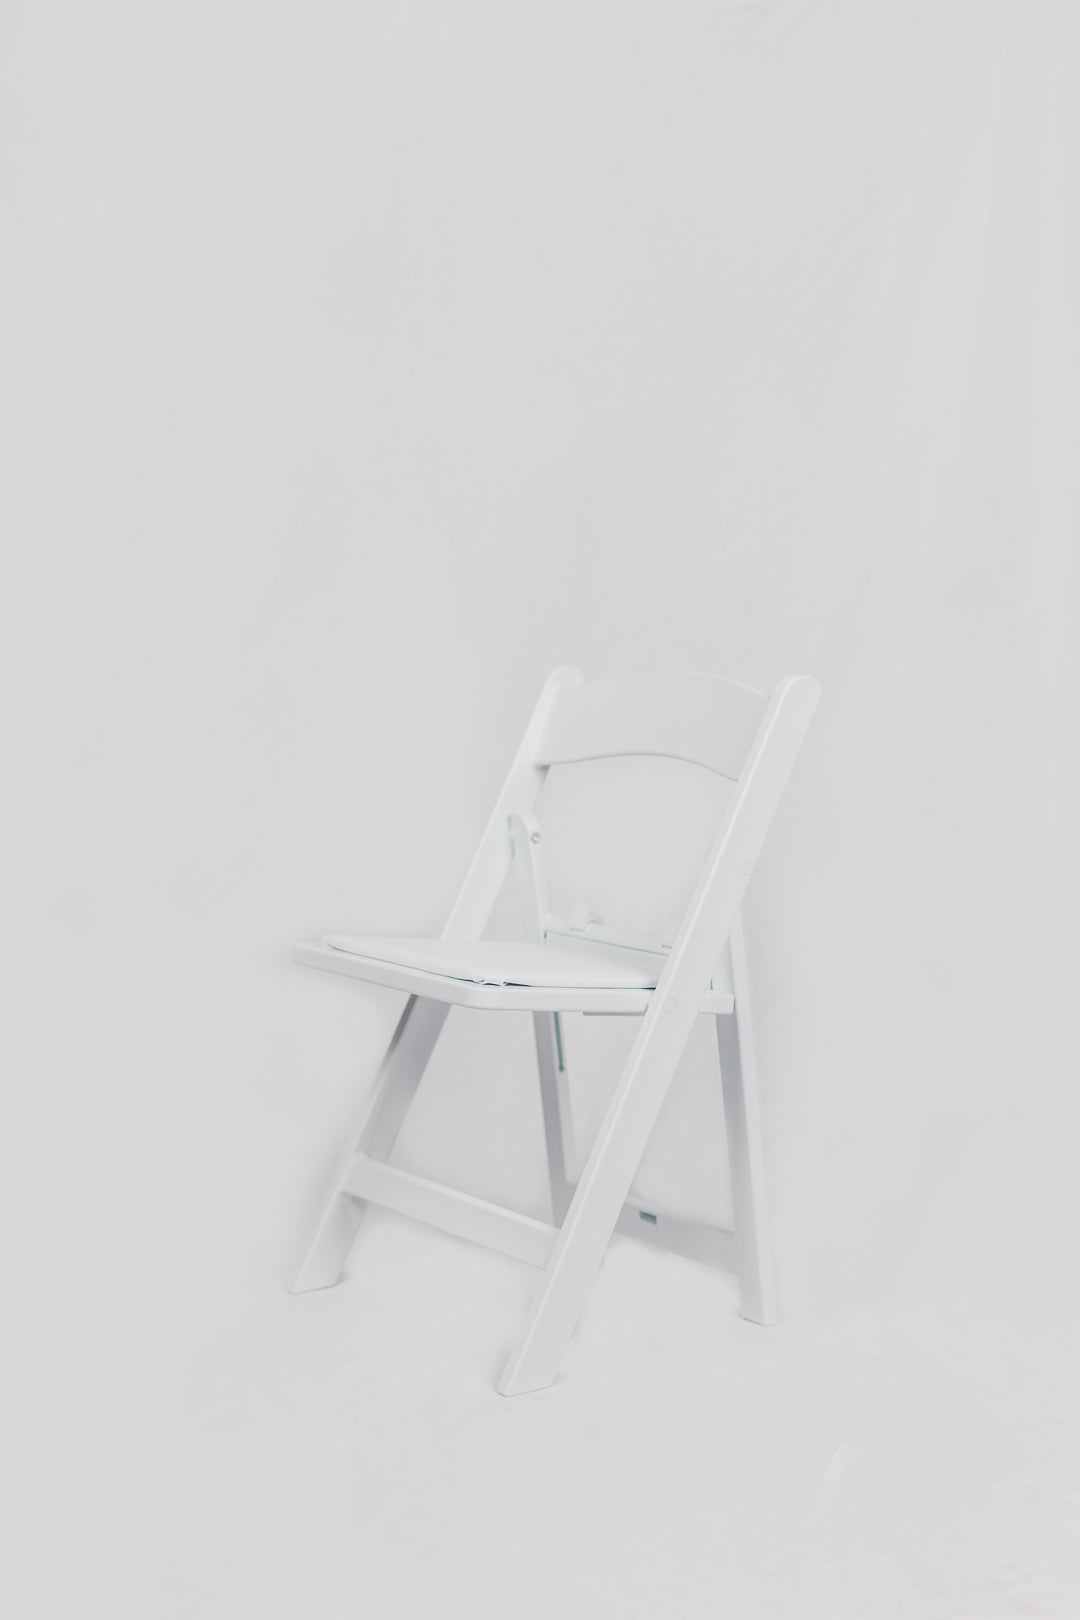 KIDS Americana Chairs - White 5 chairs @$25 each